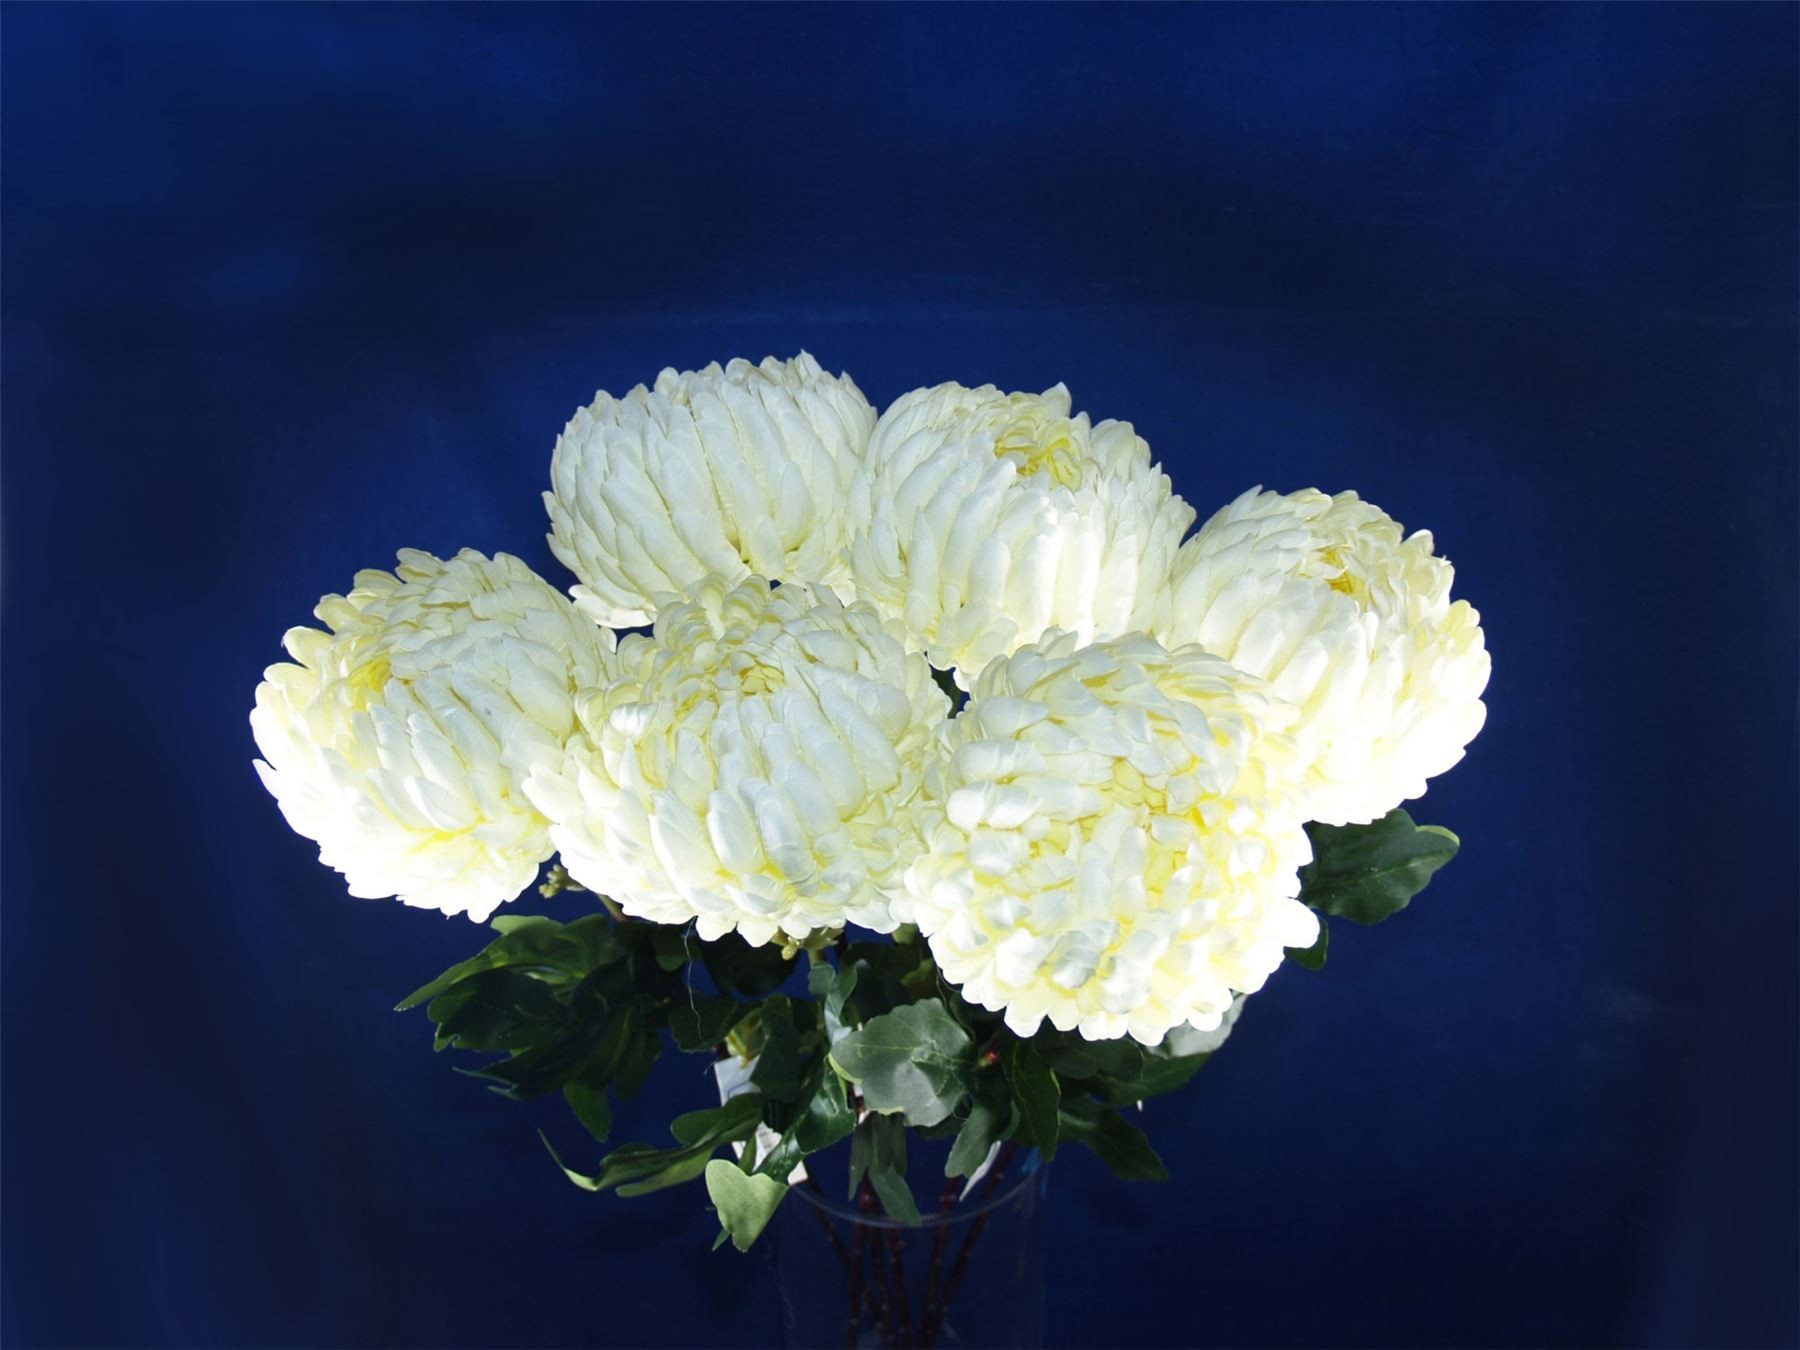 6 x single stem 80cm ball chrysanthemum artificial silk flowers 6 x single stem 80cm ball chrysanthemum artificial silk flowers white 3735 mightylinksfo